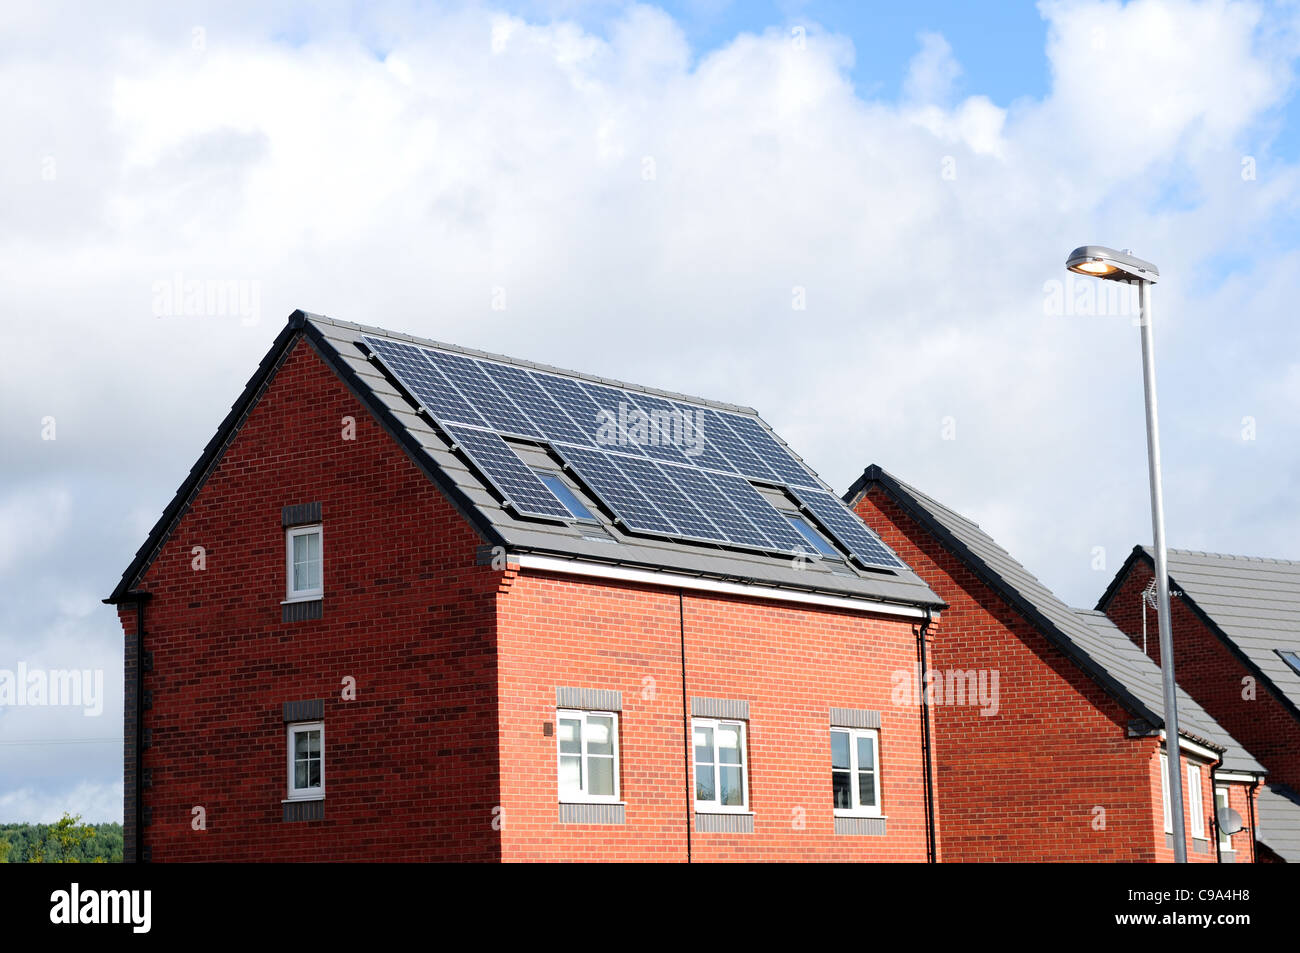 New Build House With Solar Panels. - Stock Image